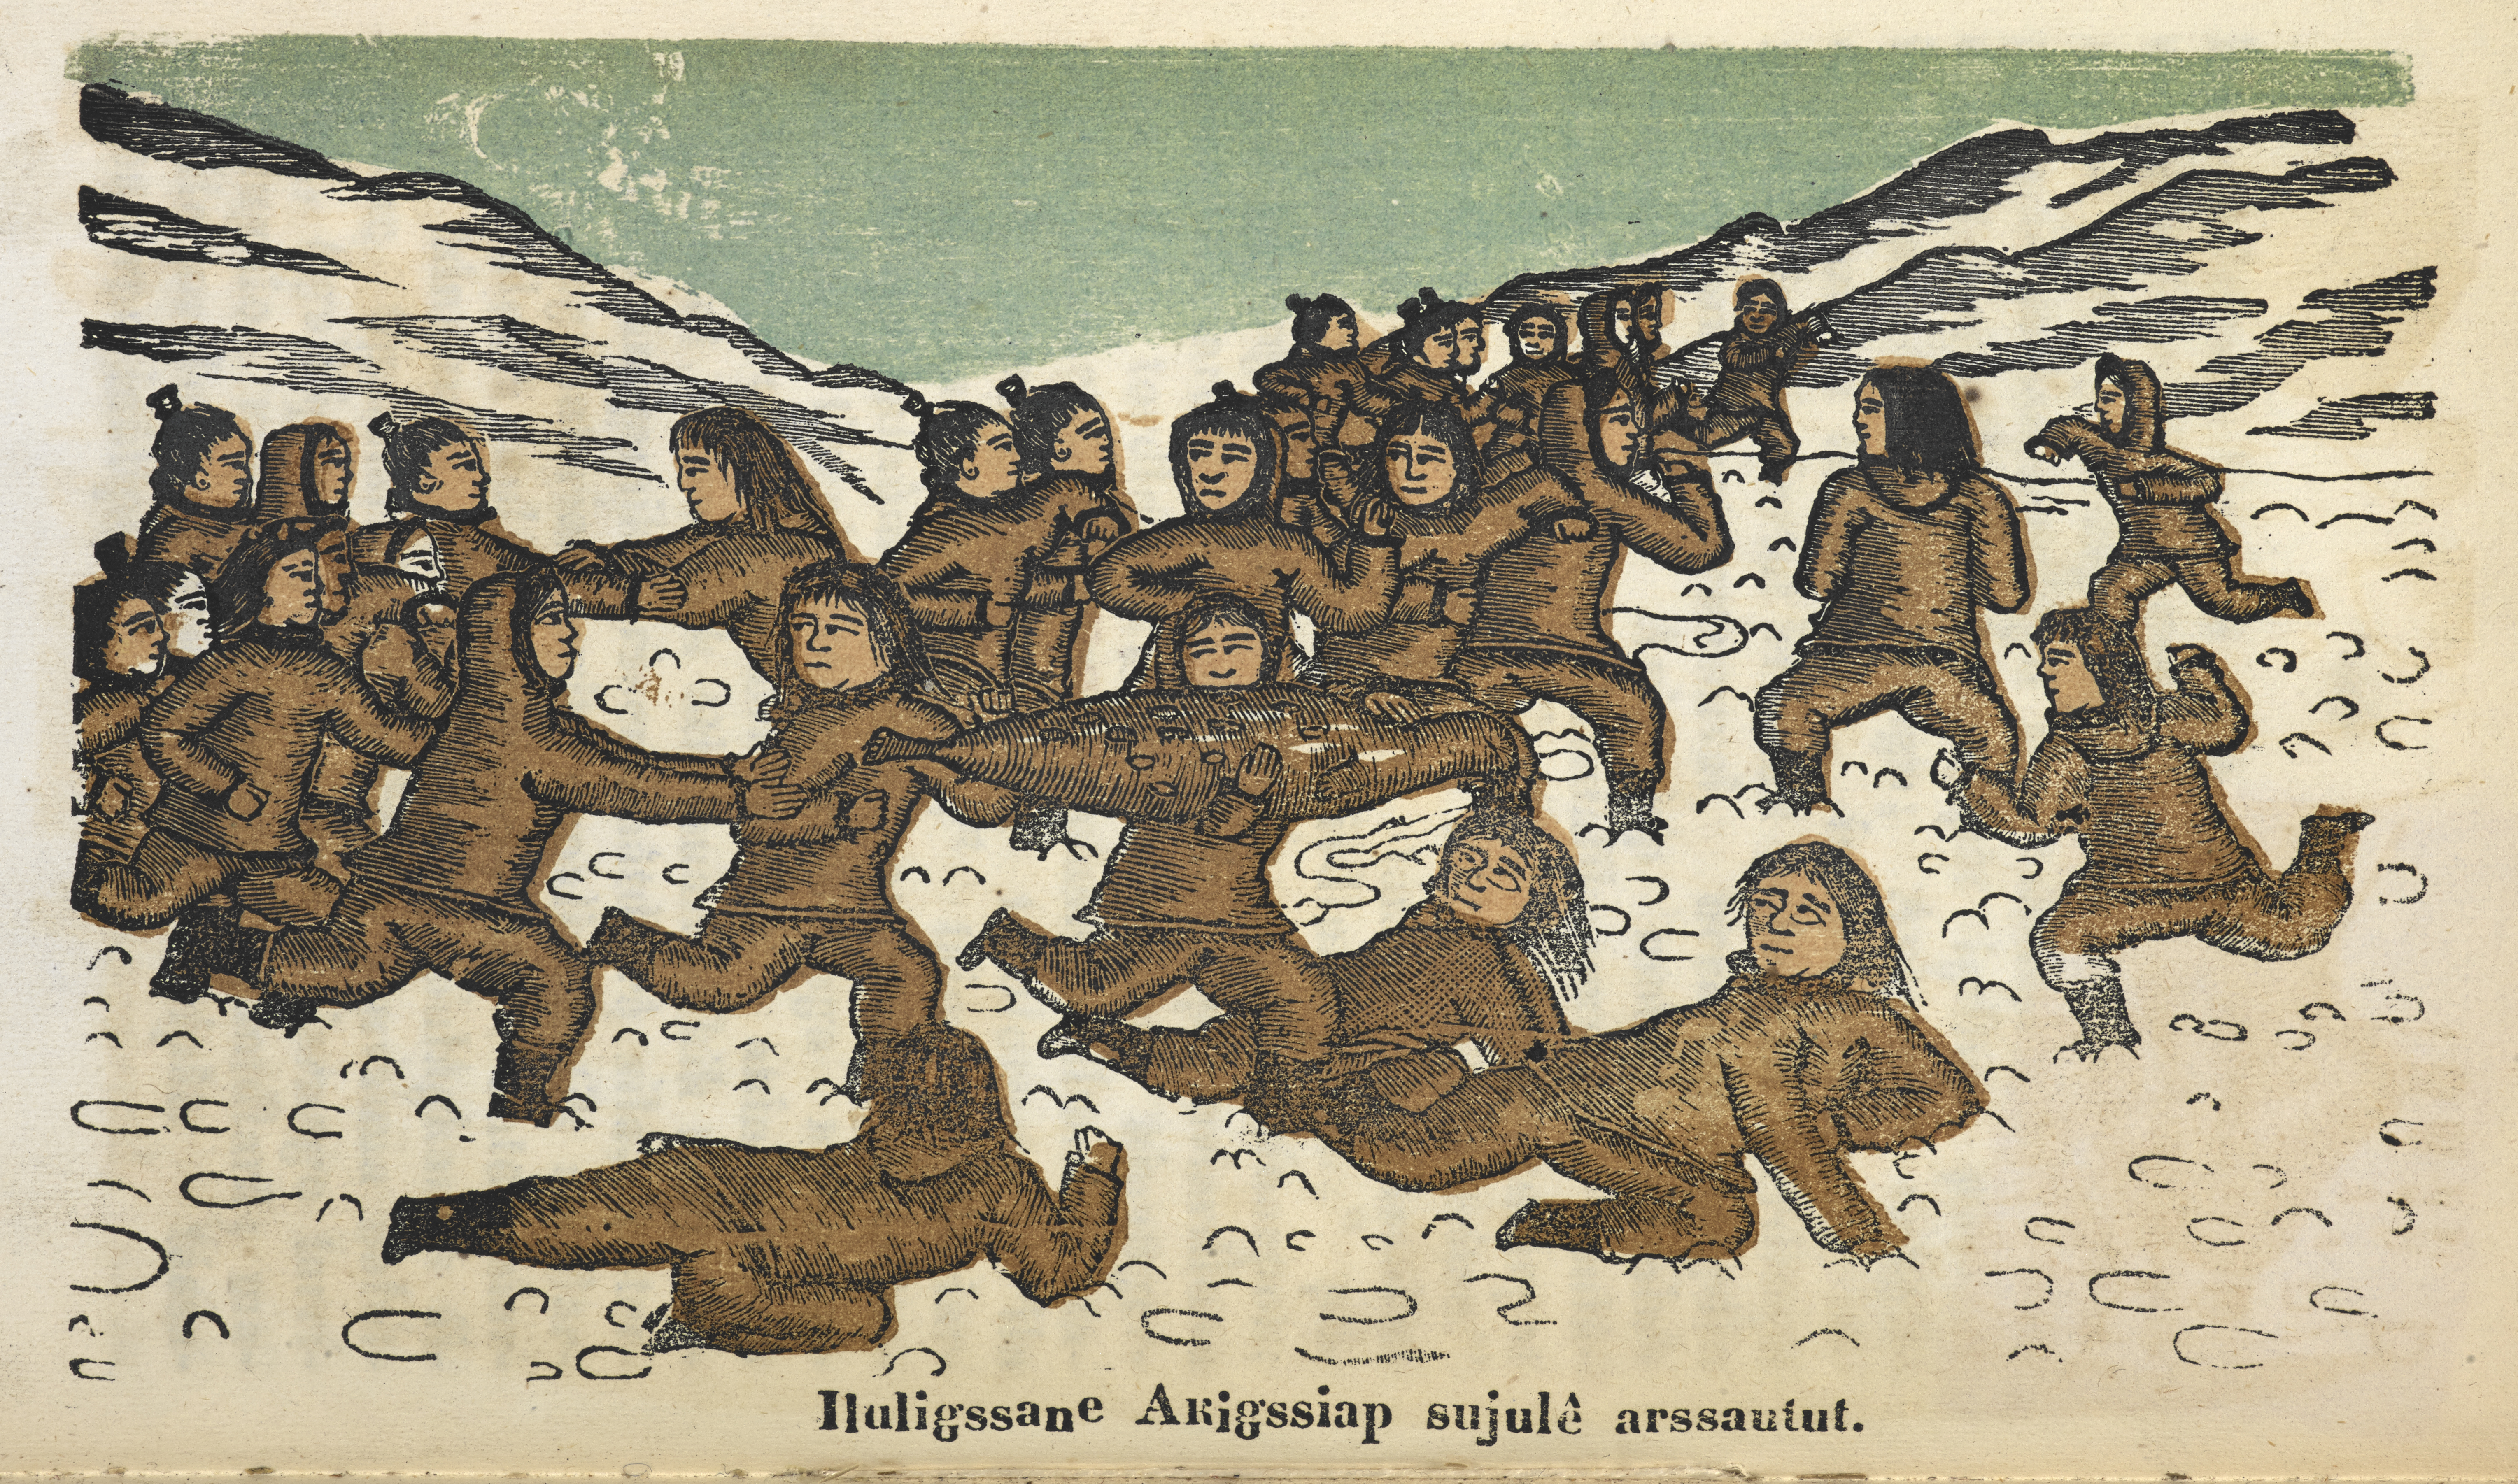 Kaladlit Oklluktualliait [Greenland Legends], Godthaab (1859 - 63) on display in Lines in the Ice - woodcuts of traditional Greenlandic Inuit stories, produced in the 19th century by an indigenous artist. Photography courtesy of the British Library.